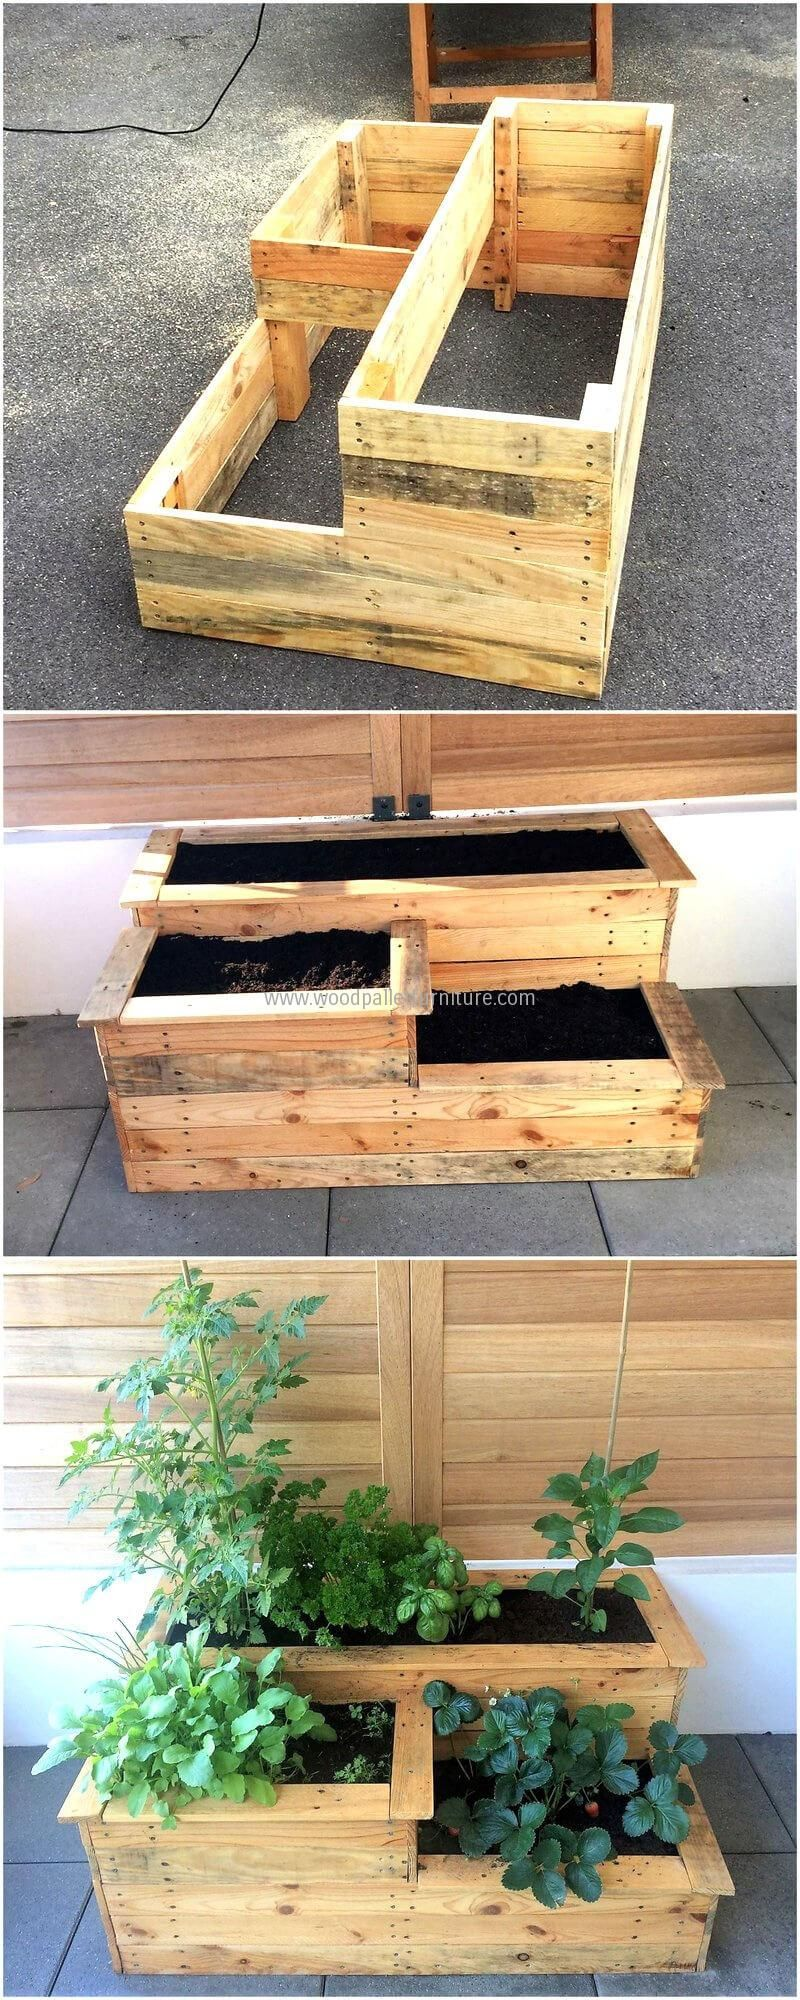 repurposing plans for shipping wood pallets wood pallets